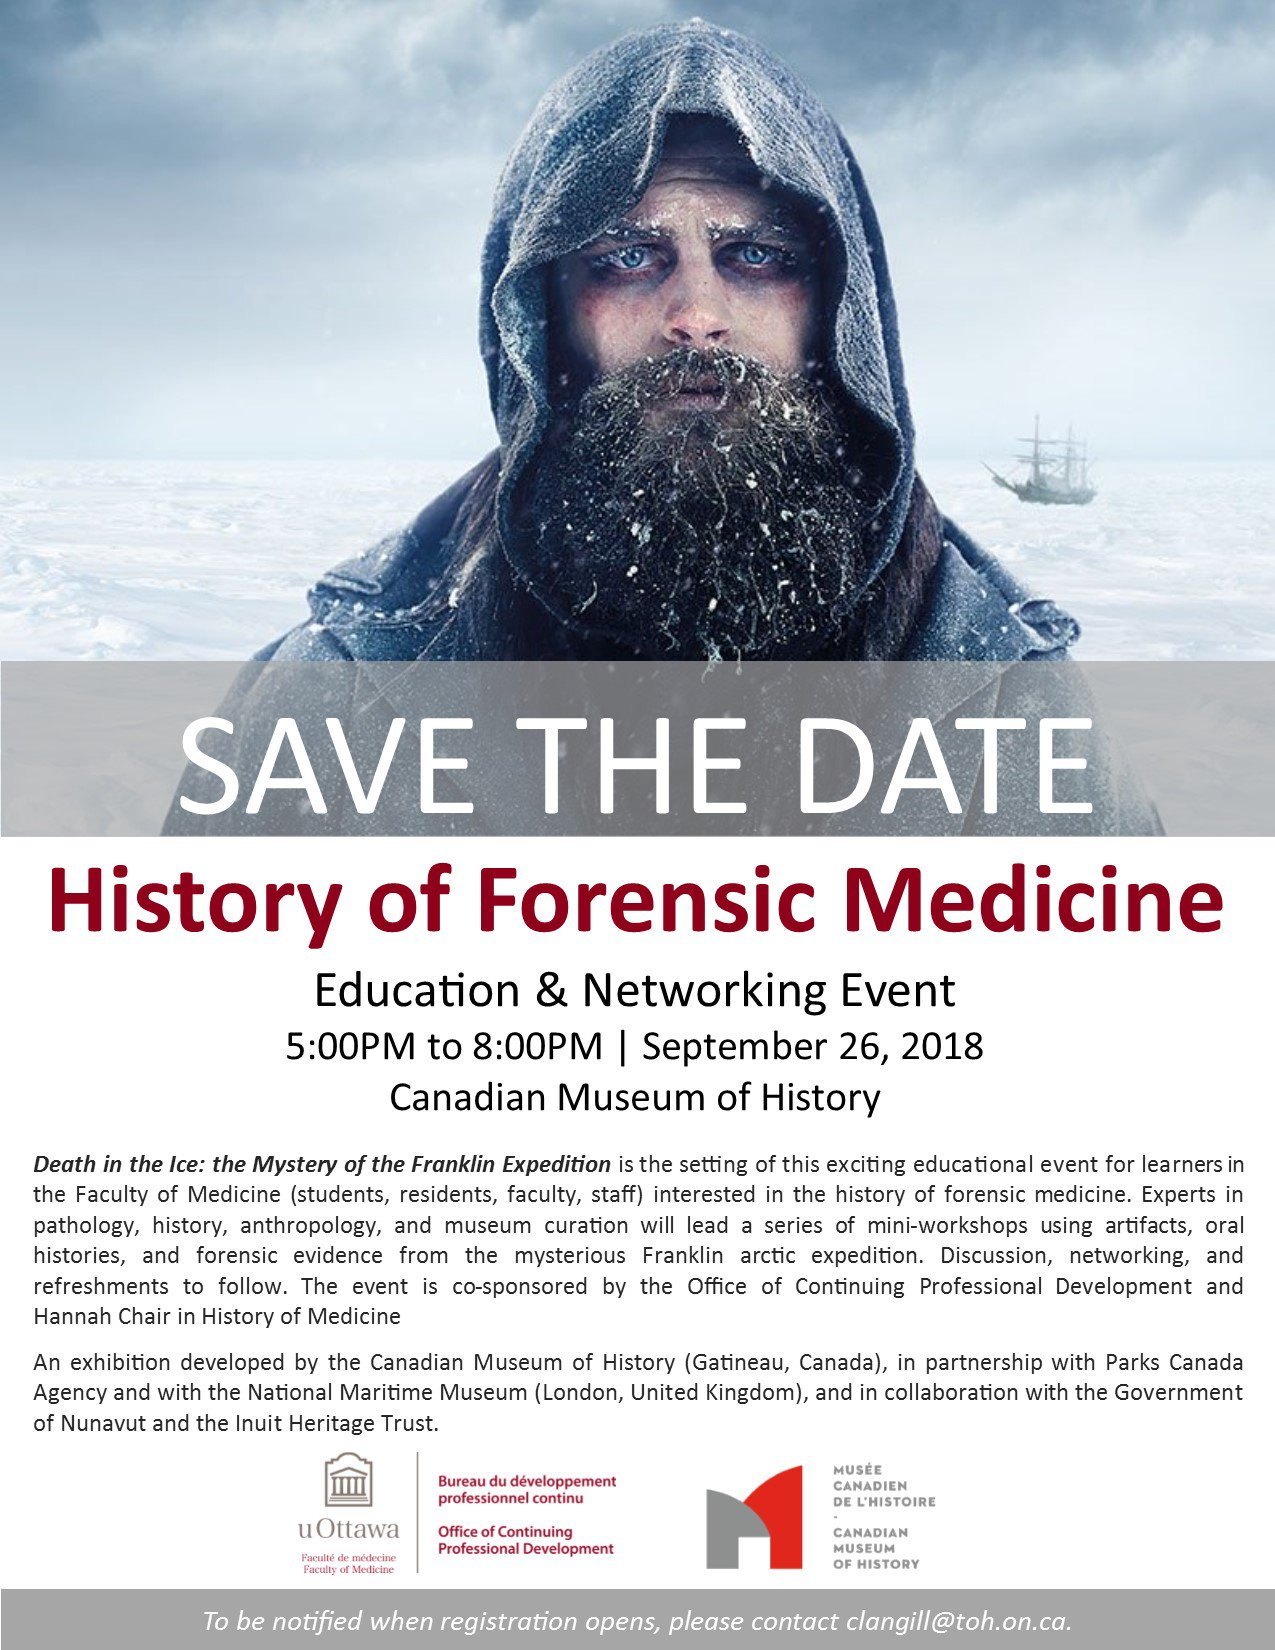 Uottawa Pgme On Twitter History Of Forensic Medicine Education Networking Event On Sept 26 At The Canmushistory Please Contact Clangill Toh On Ca To Register Https T Co Xqhwr80qhi